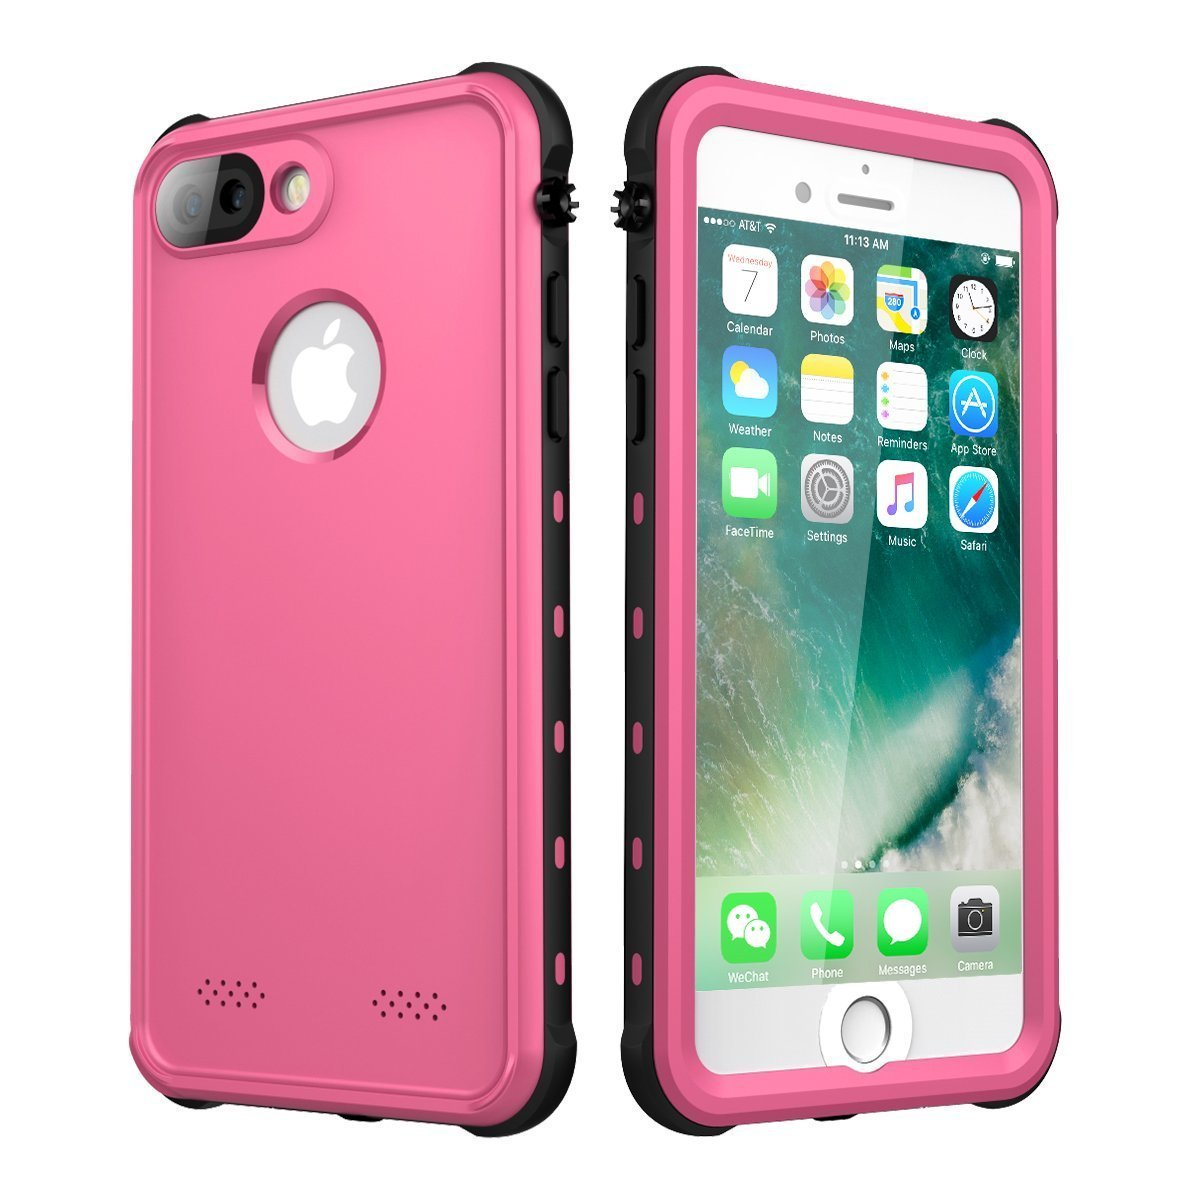 separation shoes 87da1 91983 iPhone 7 Plus/iPhone 8 Plus Case Waterproof, iThrough Underwater Case for 7  Plus/5.5